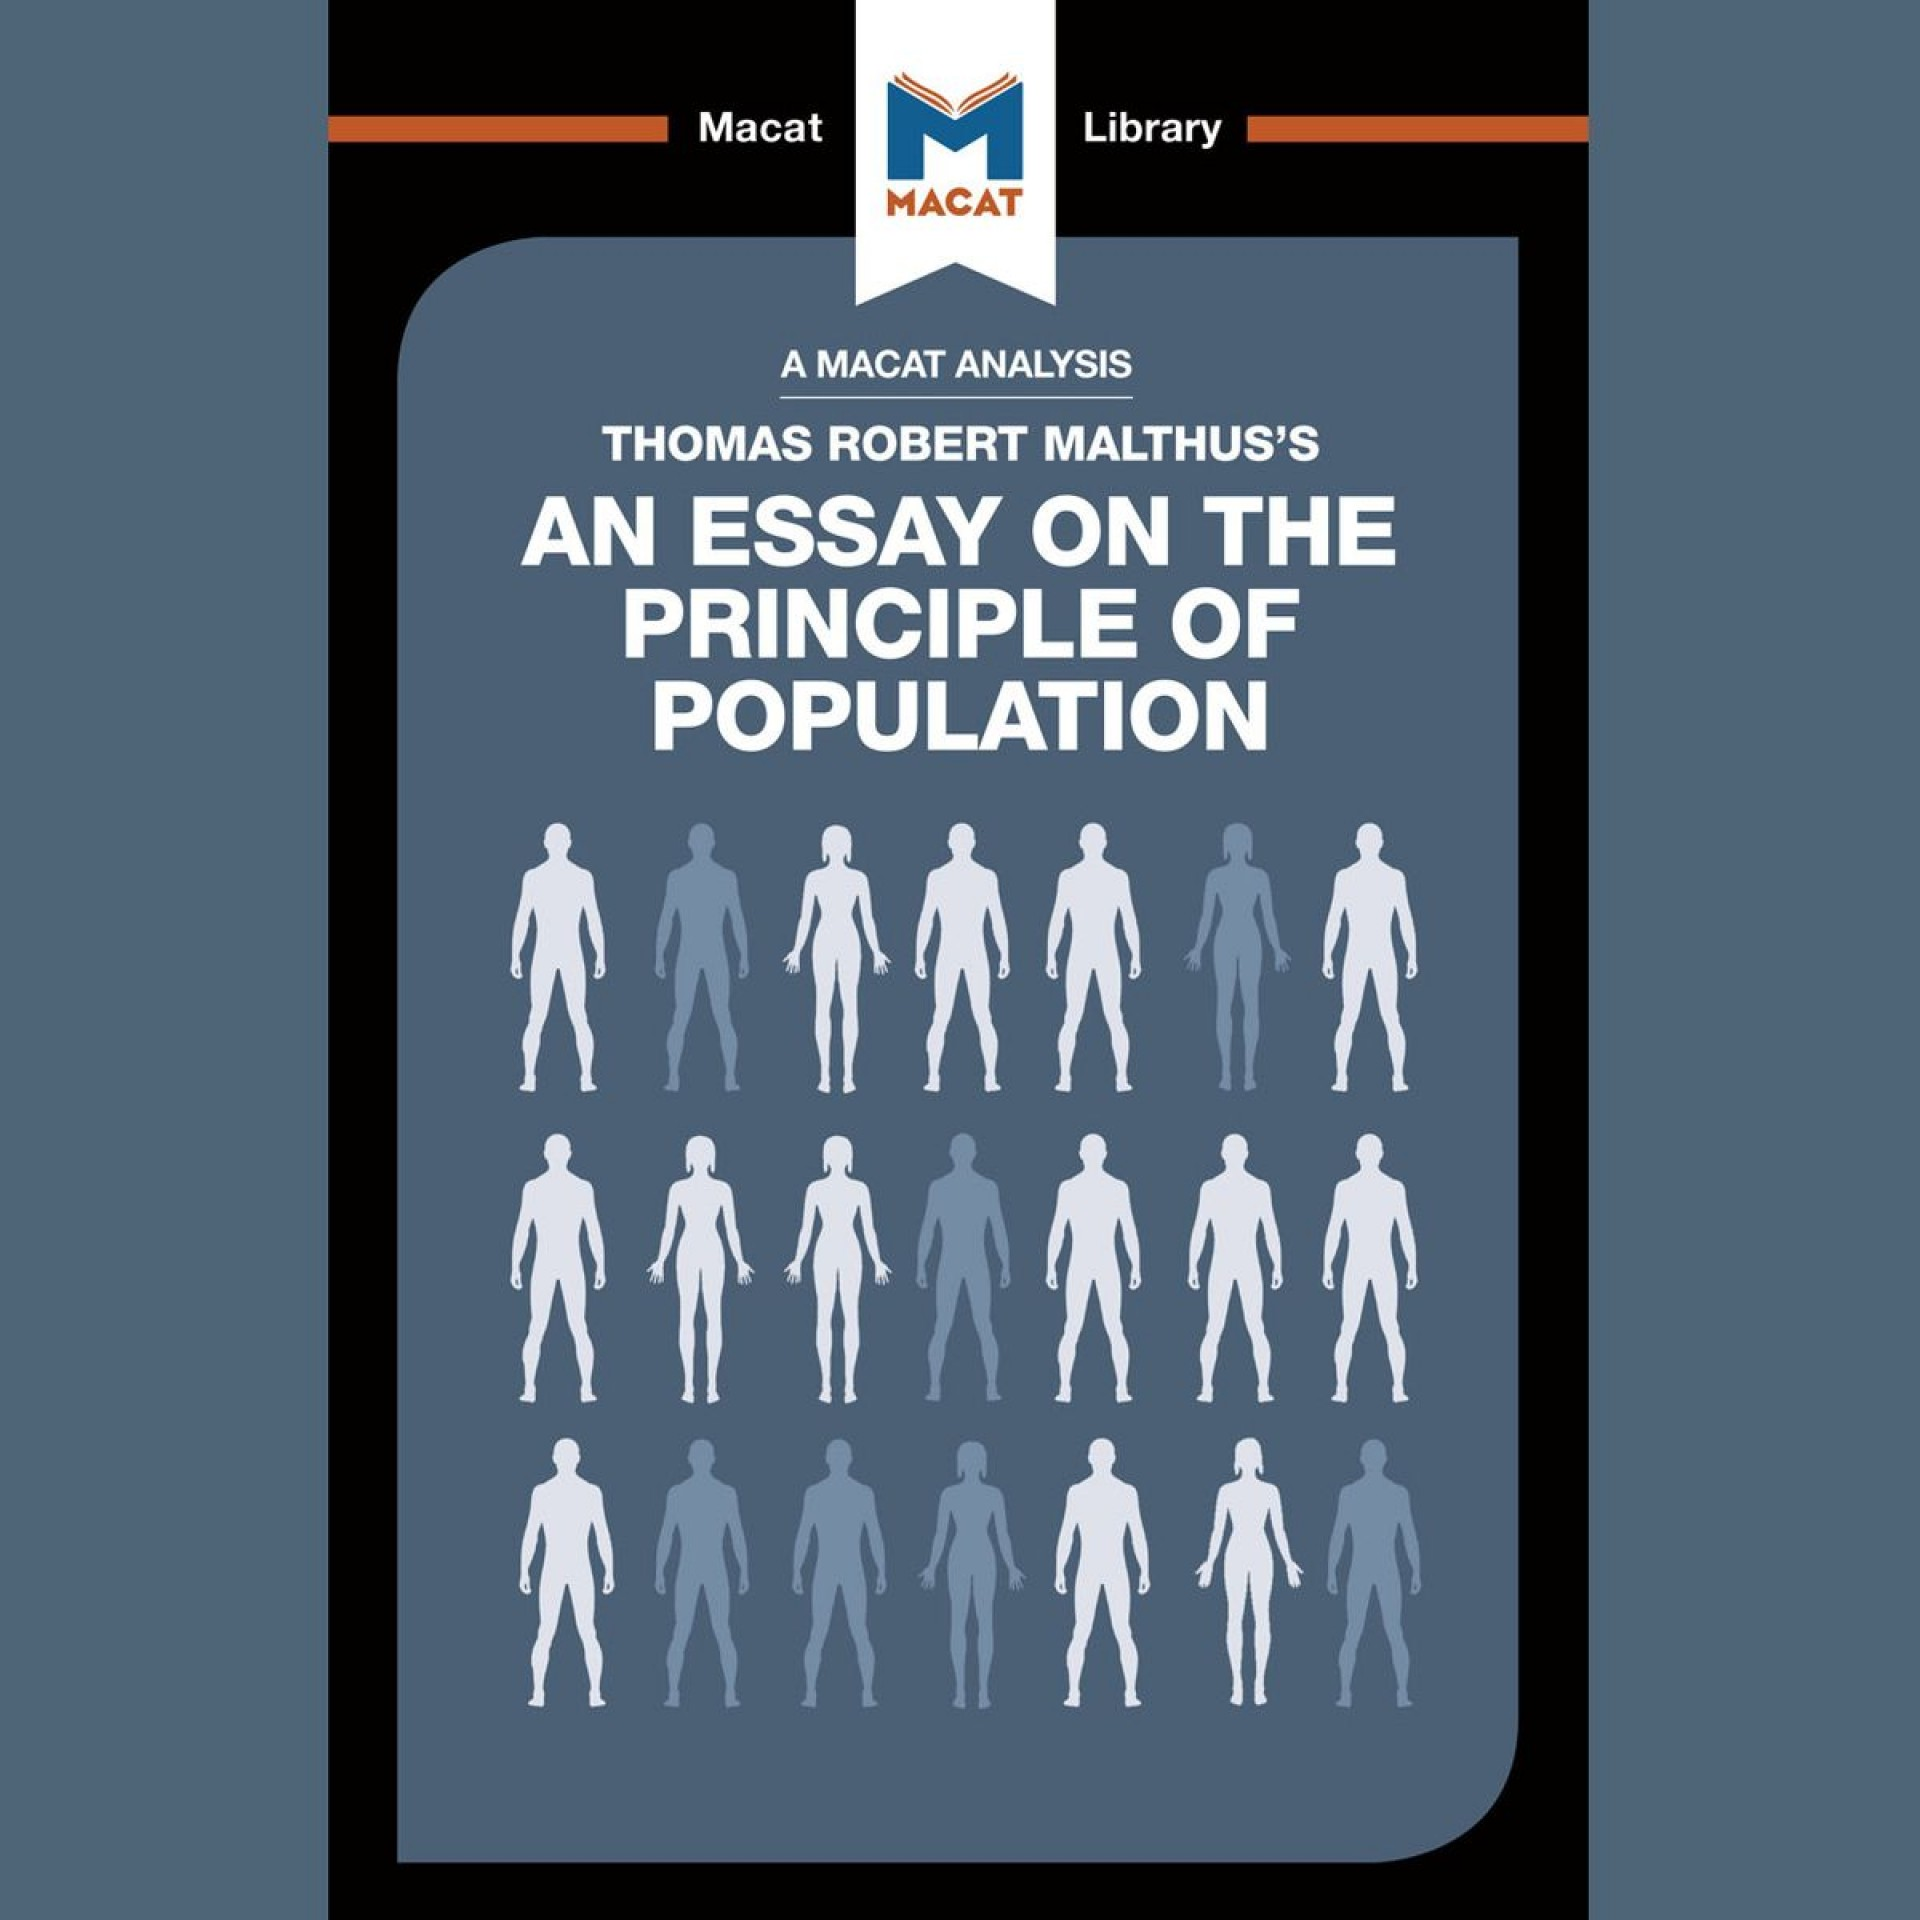 019 Thomas Malthus An Essay On The Principle Of Population Robert Marvelous Summary Analysis Argued In His (1798) That 1920